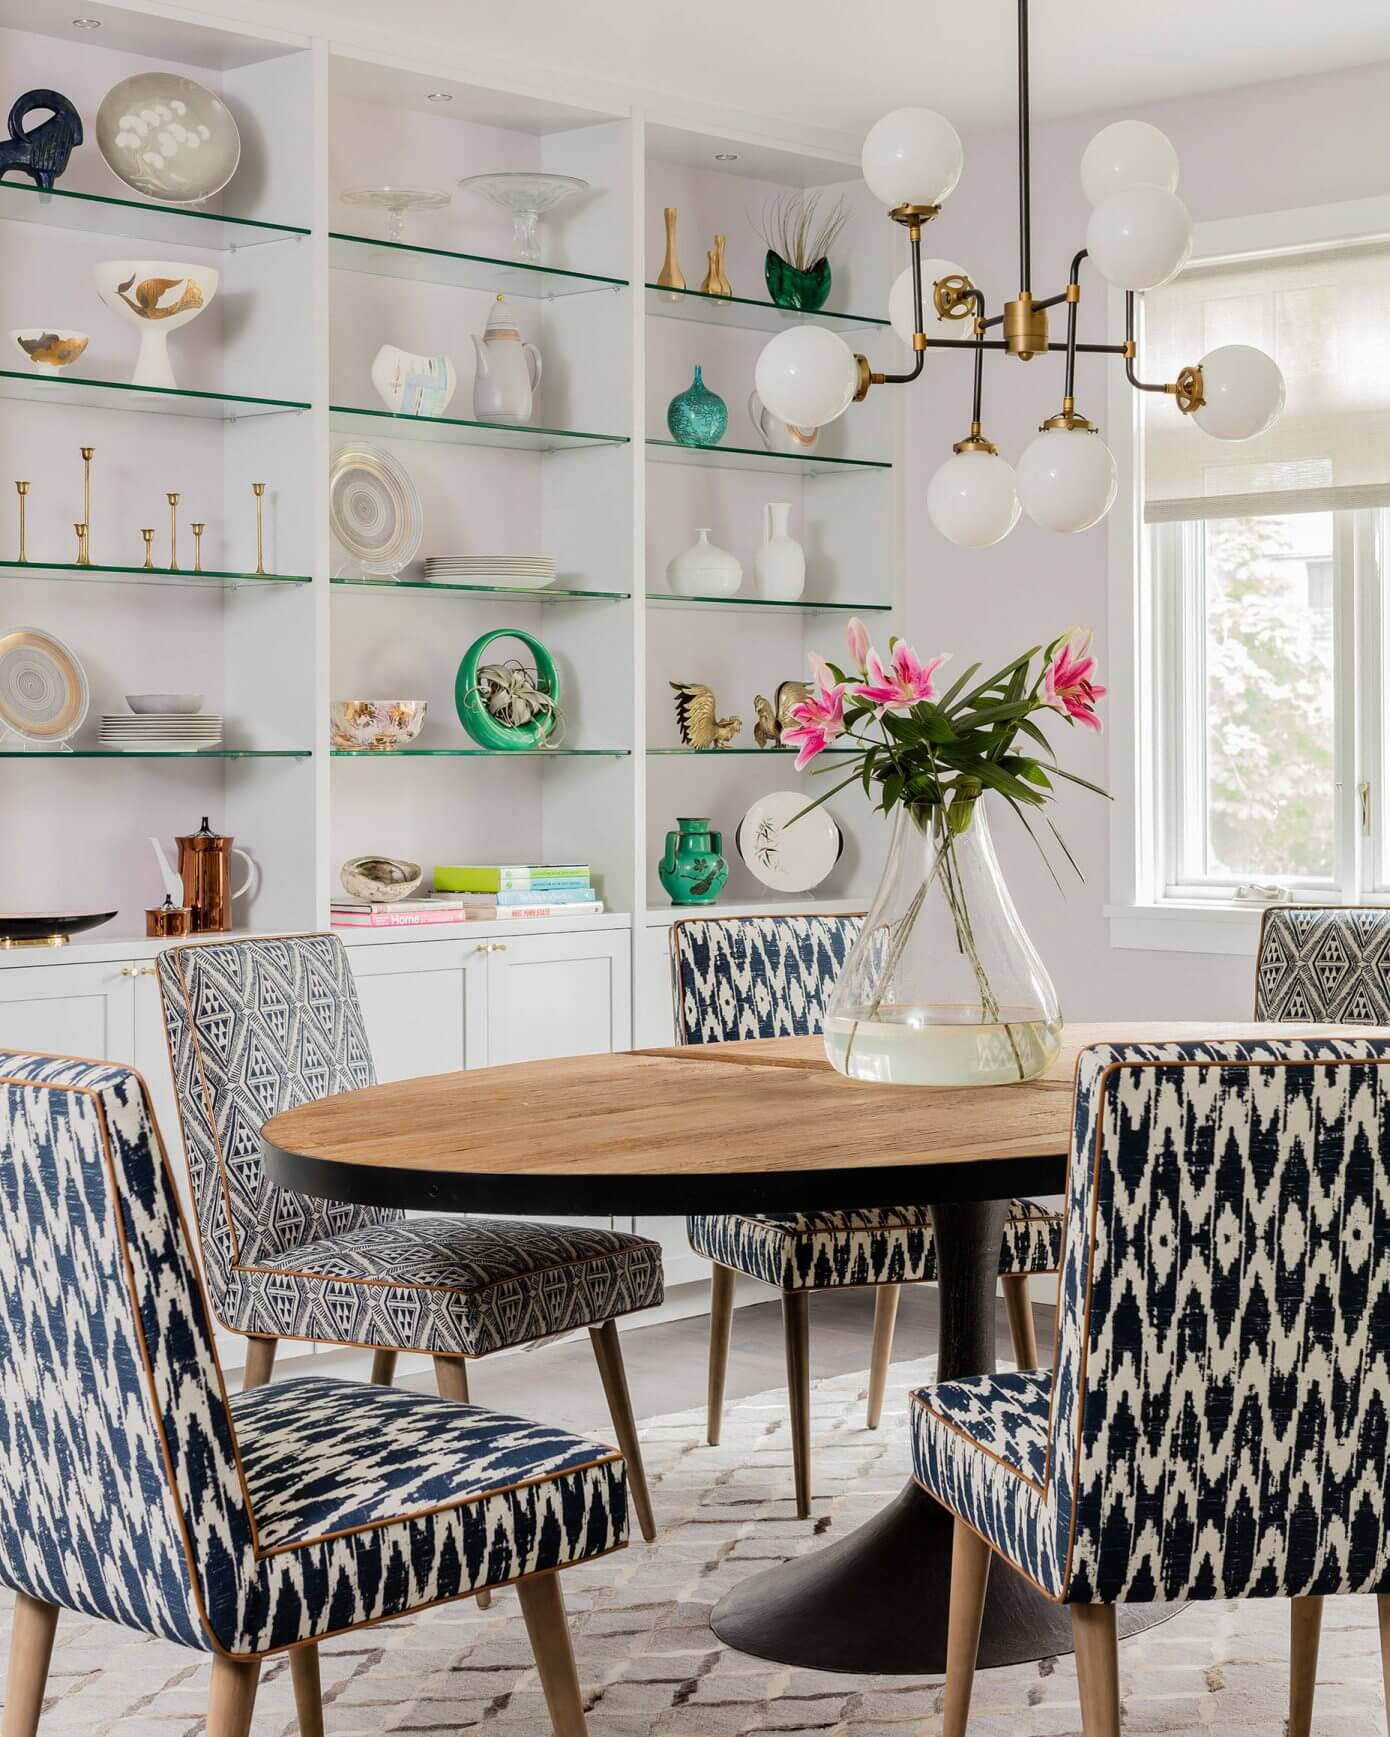 Home in Larchmont by colorTHEORY Boston